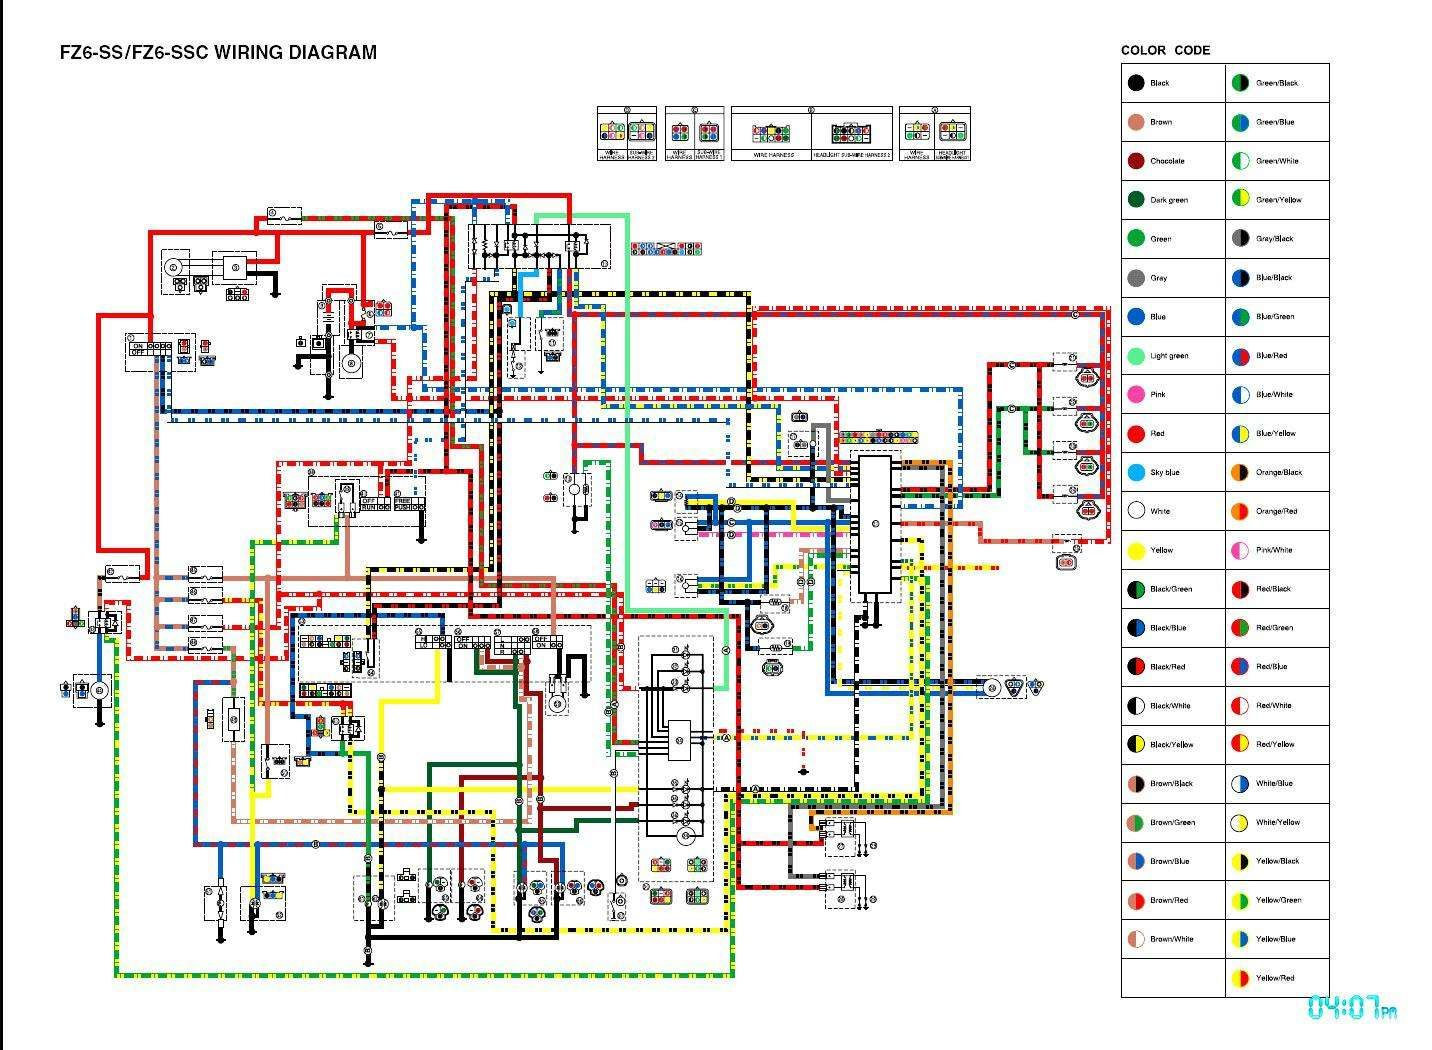 Wiring Diagram Outlets Beautiful Wiring Diagram Outlets Splendid Line Wiring Diagram Help Signalsbra Electrical Wiring Diagram Home Electrical Wiring Diagram